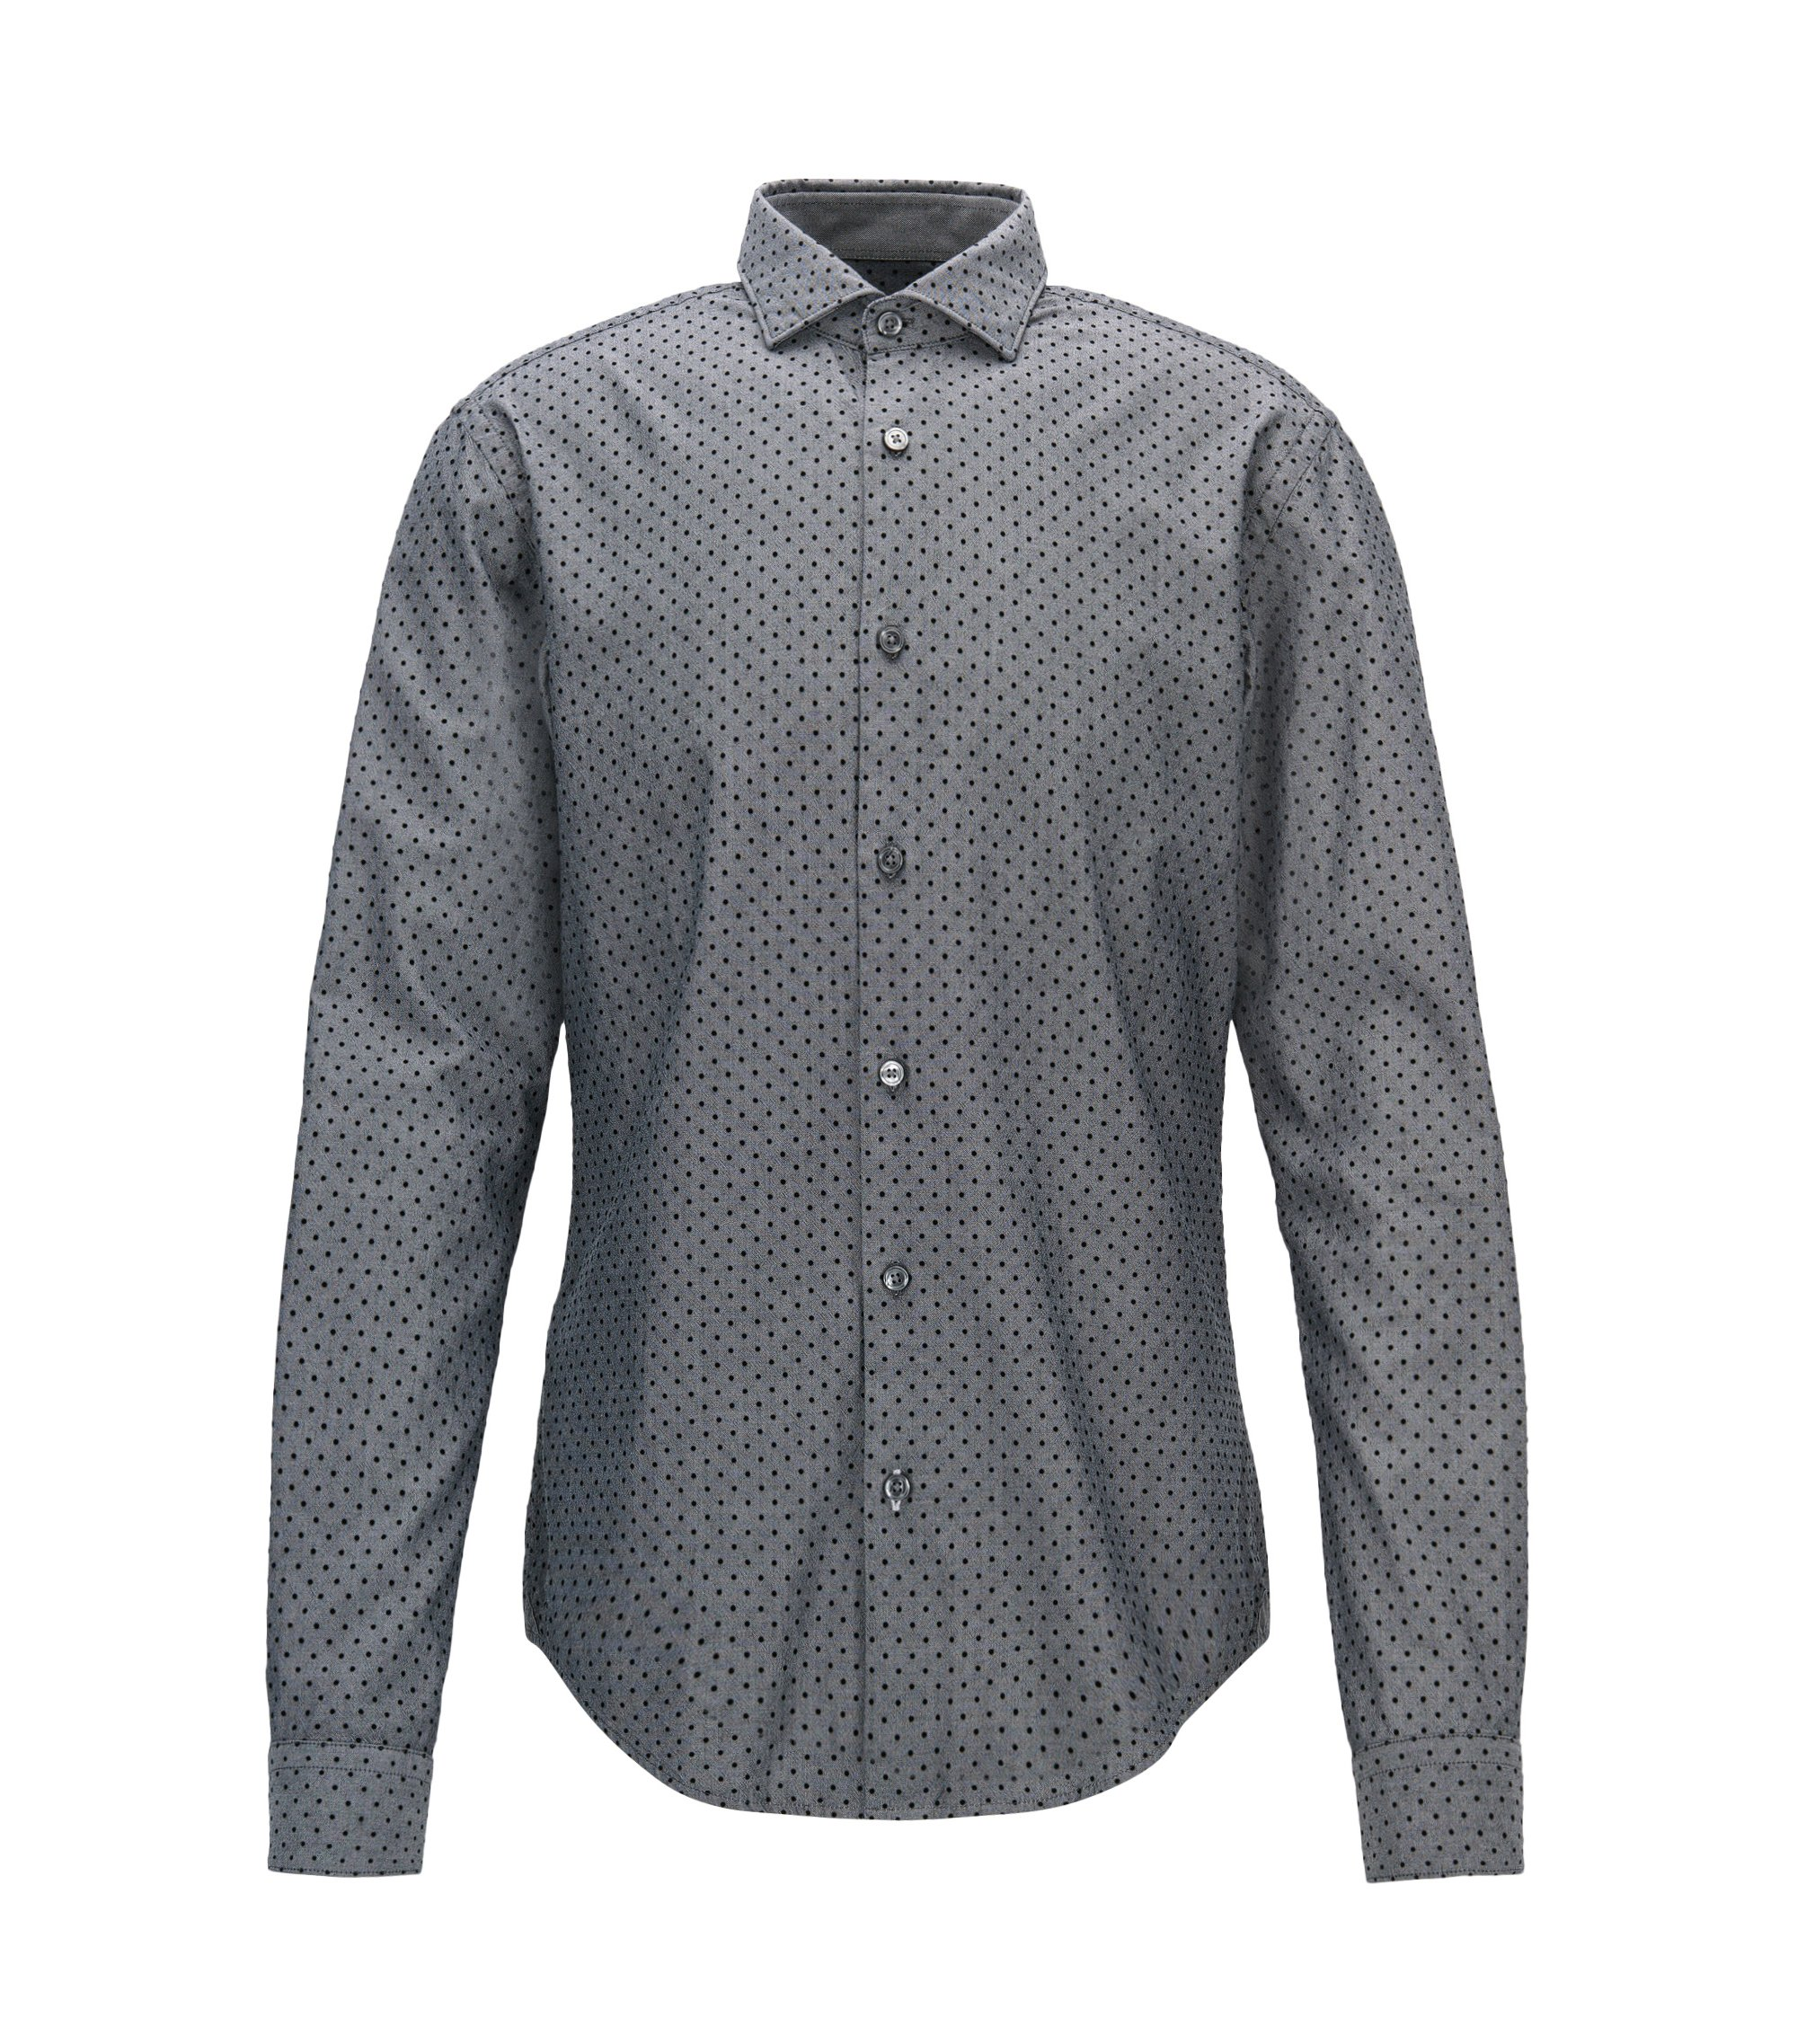 Polka Dot Sport Shirt, Slim Fit | Ridley F, Black